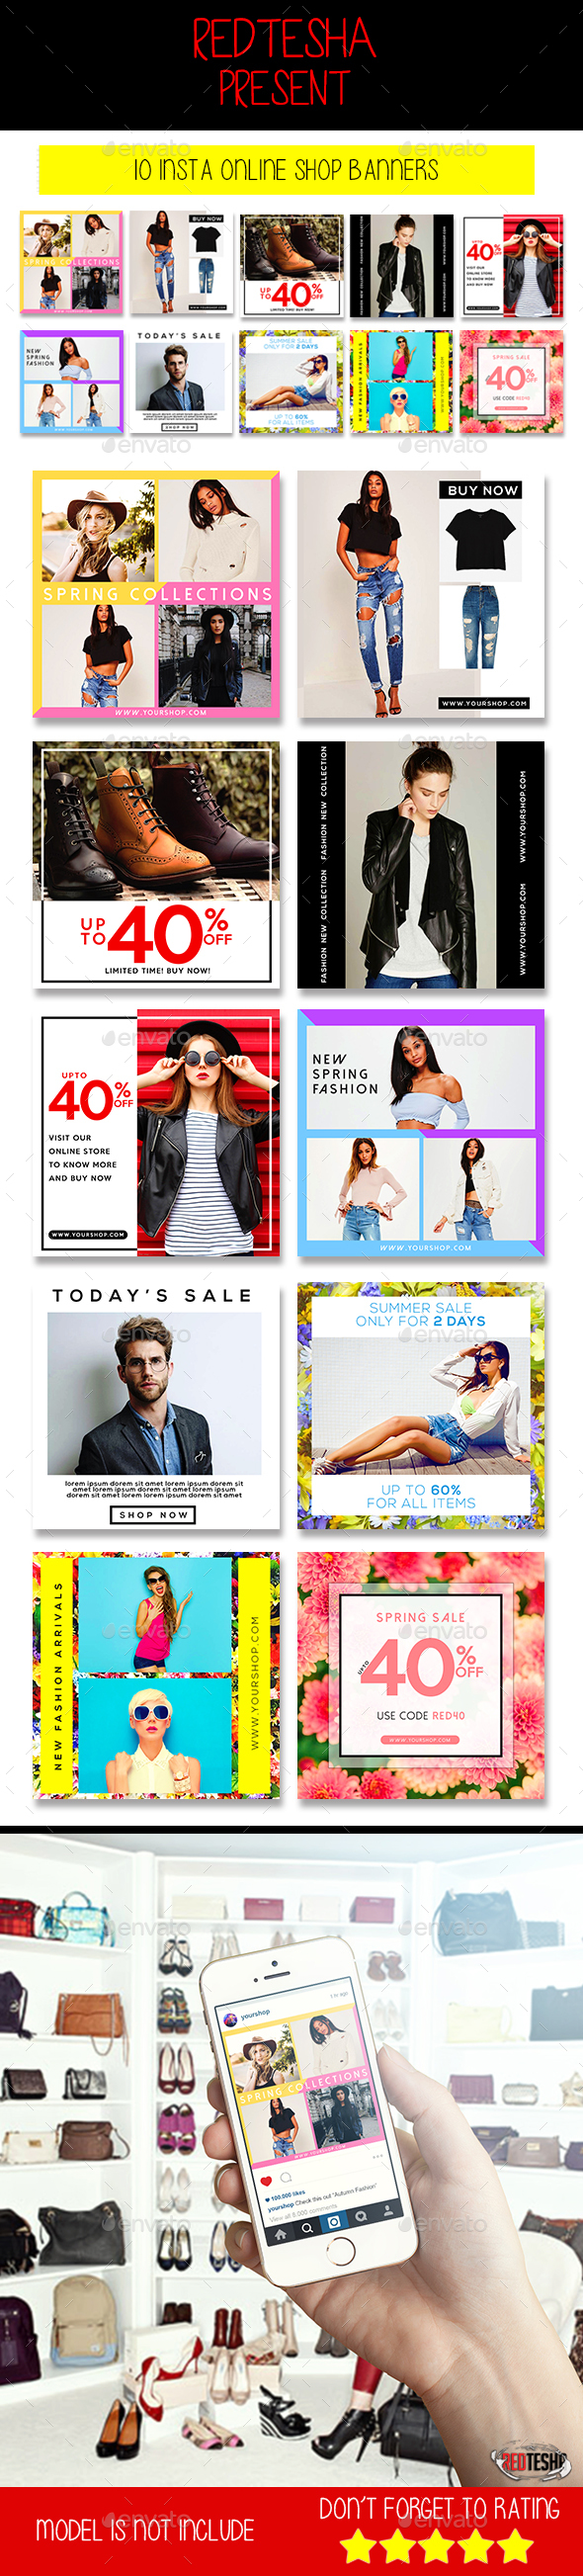 Instagram Fashion Banner #9 - Banners & Ads Web Elements